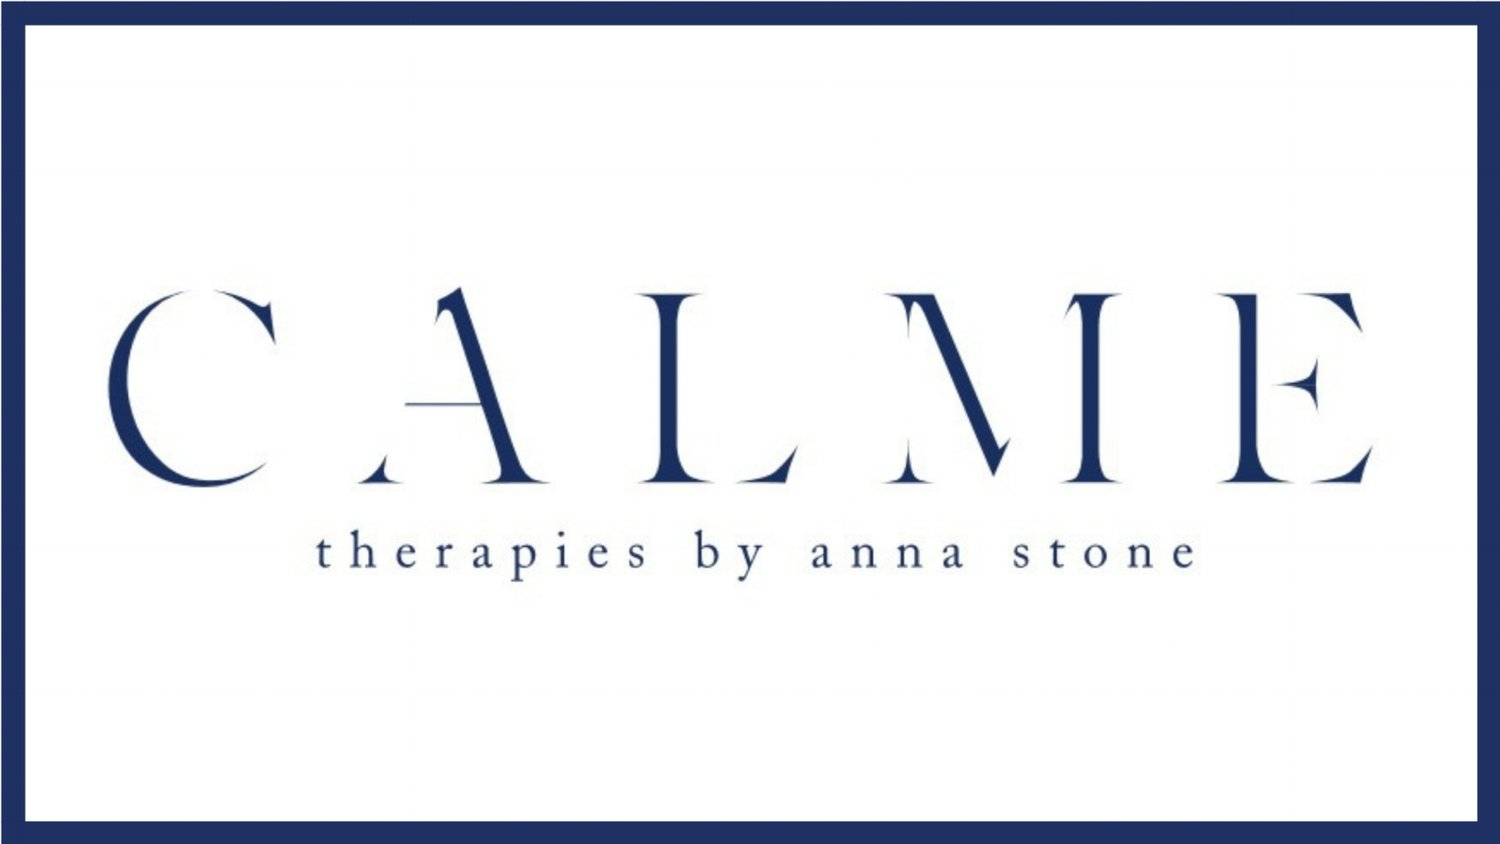 Calme therapies